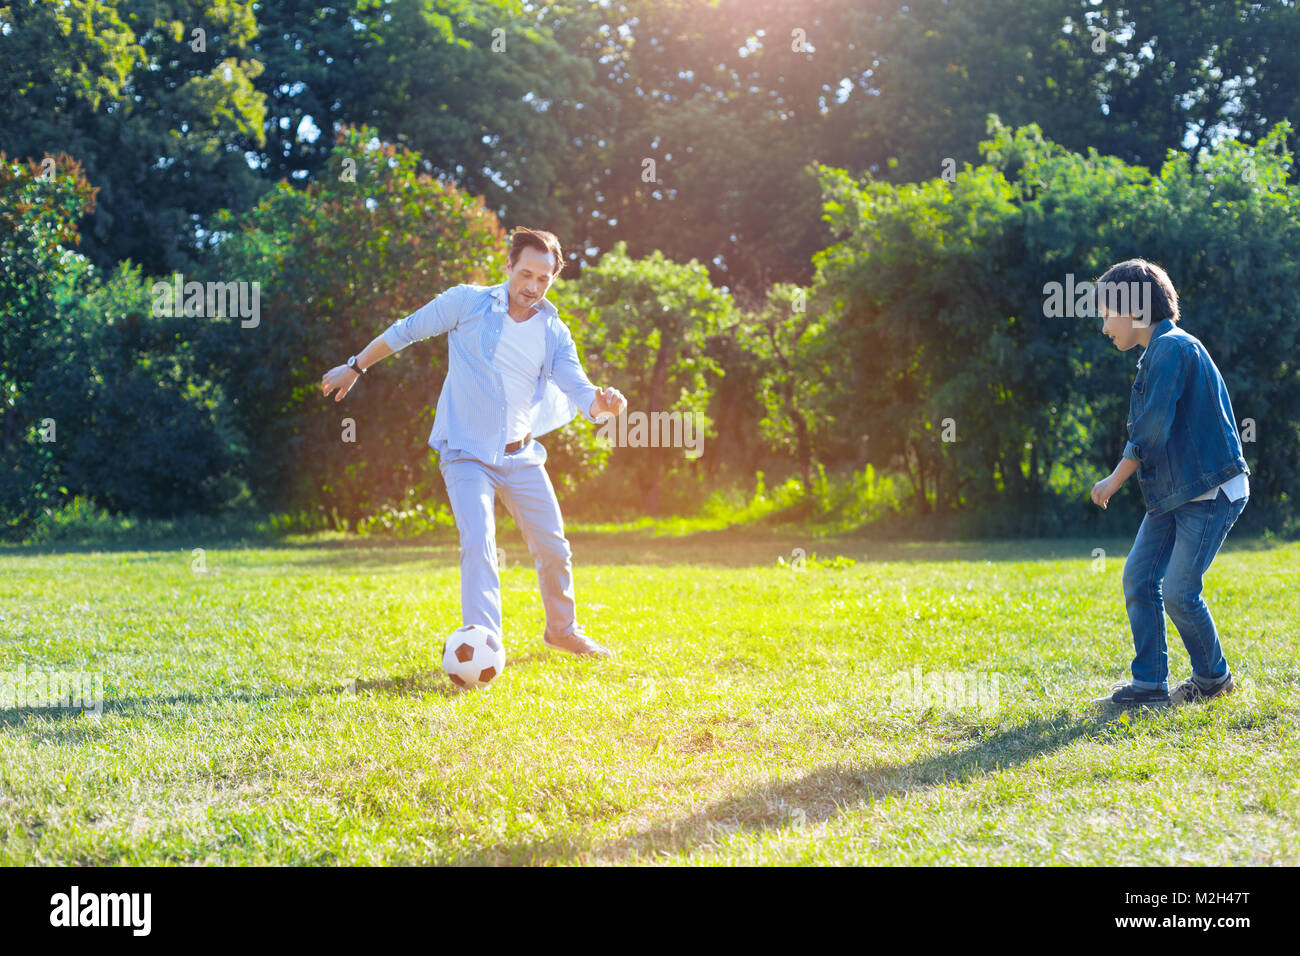 Joyful father and son playing football together - Stock Image